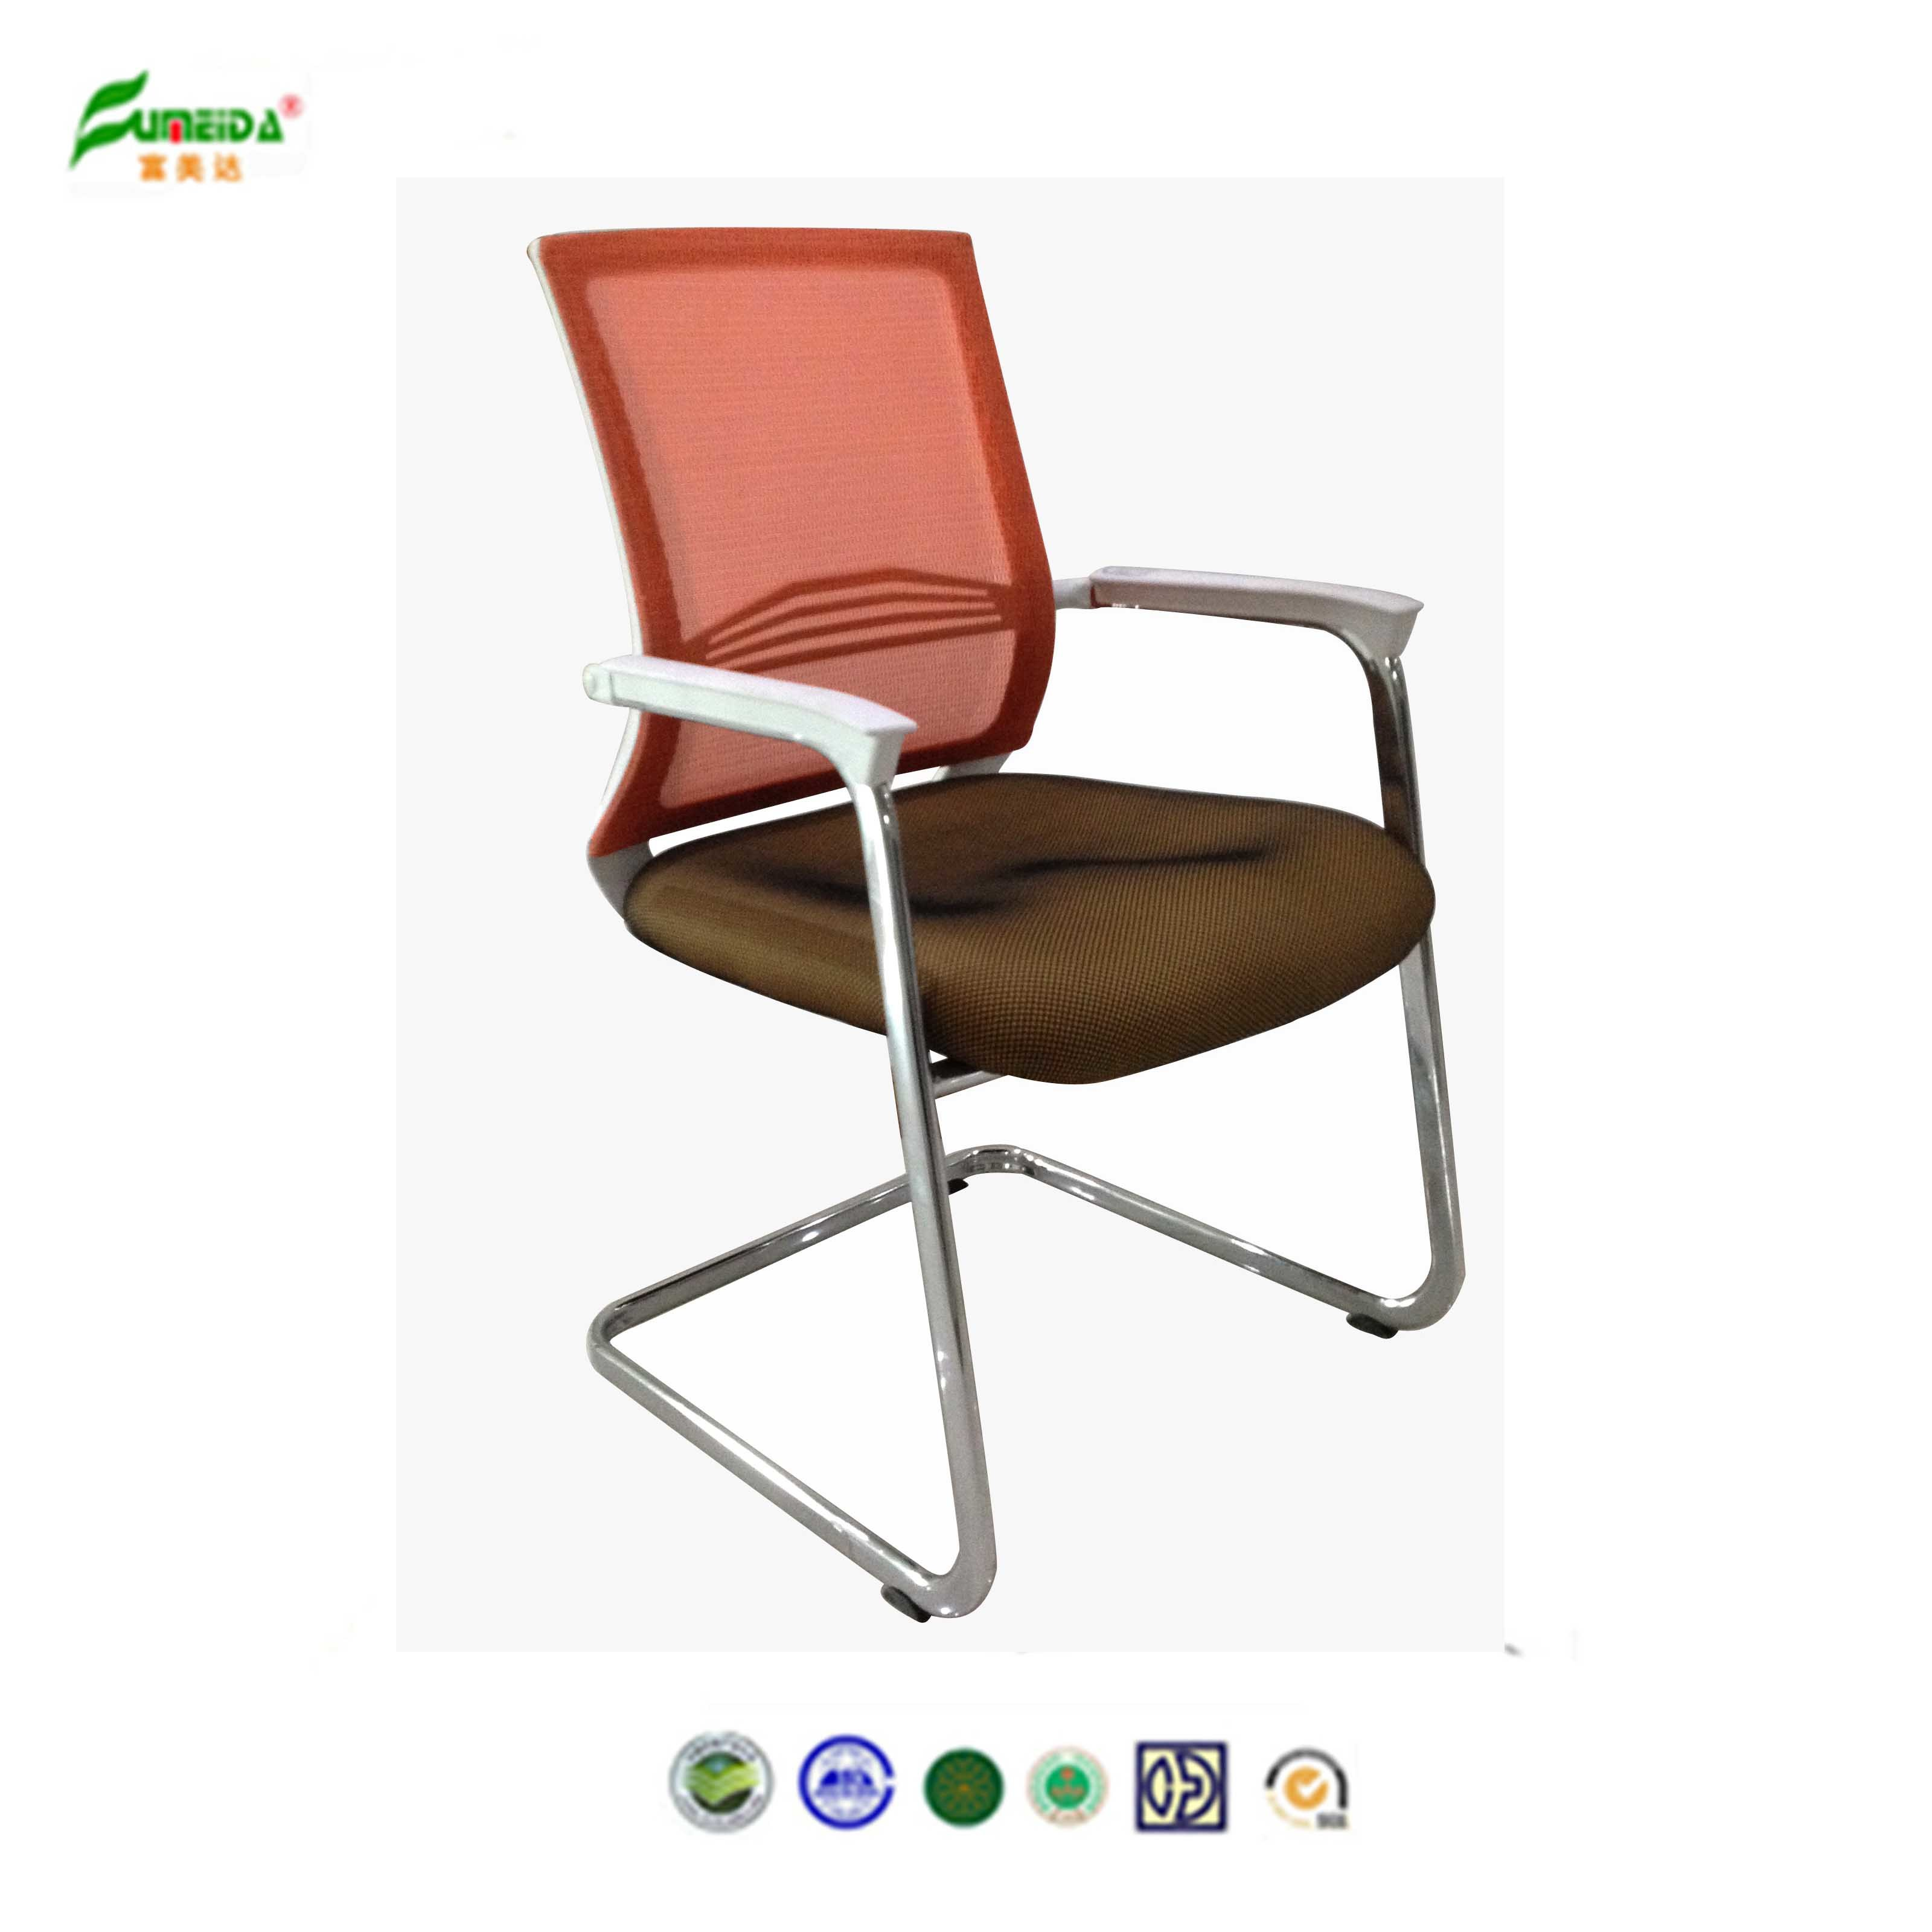 2015 Staff Chair, Ergonomic Mesh Chair Office Furniture